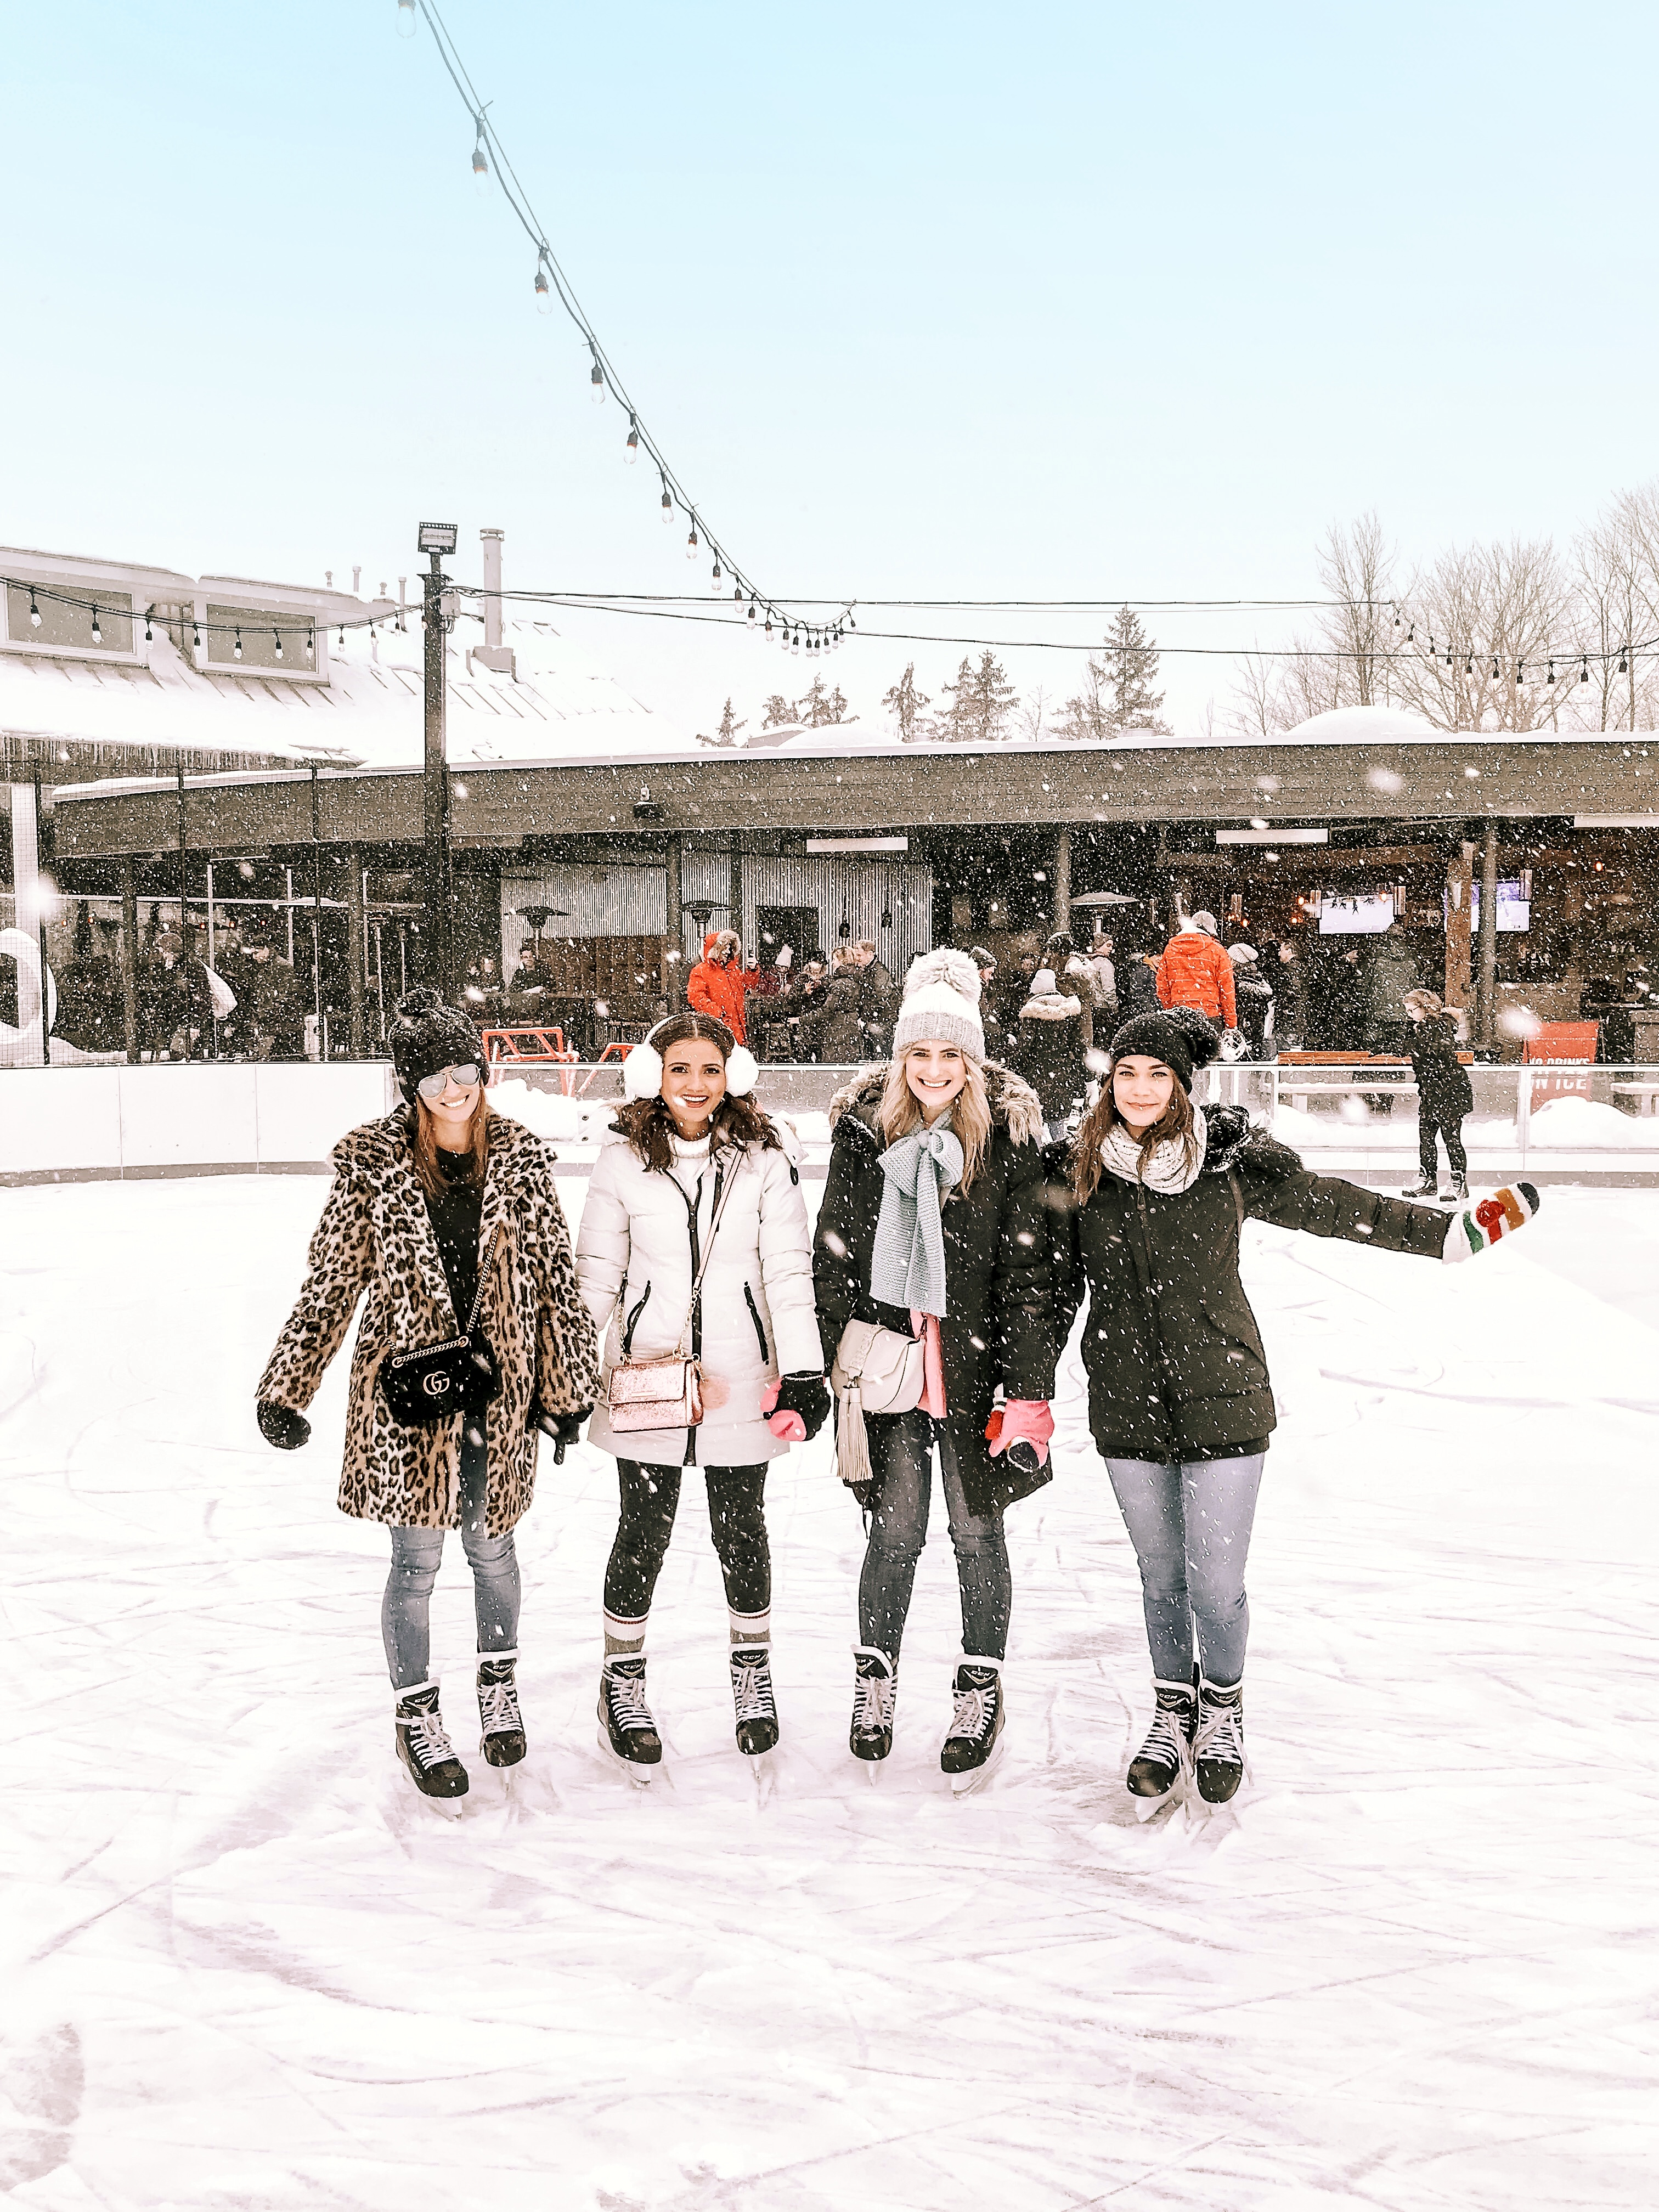 Review of White Oaks Resort; Girls weekend away at White Oaks Resort sparkleshinylove Mandy furnis